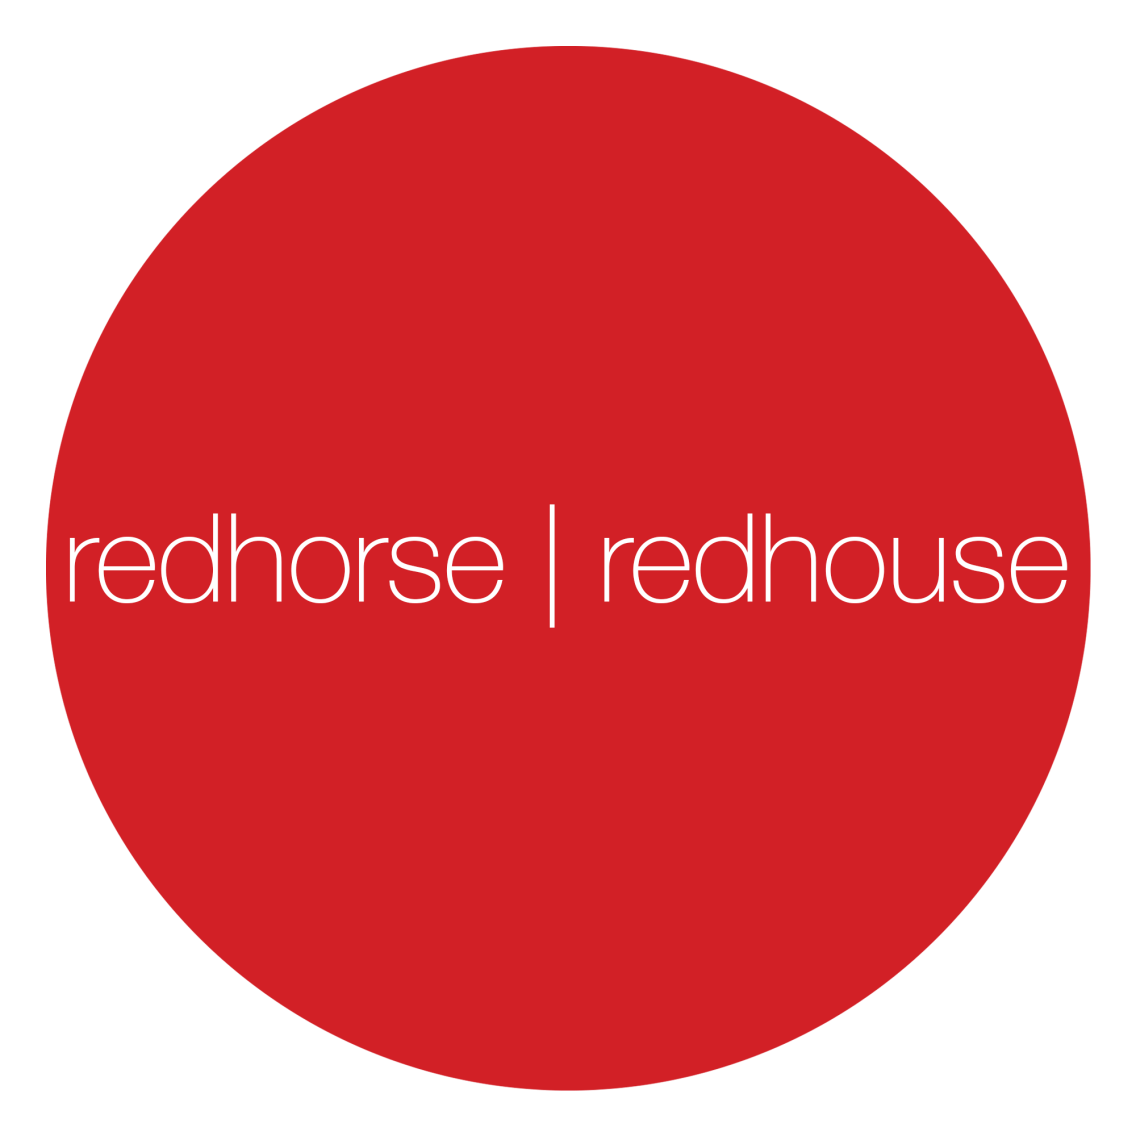 attribute-collaborator-redhorse-redhouse